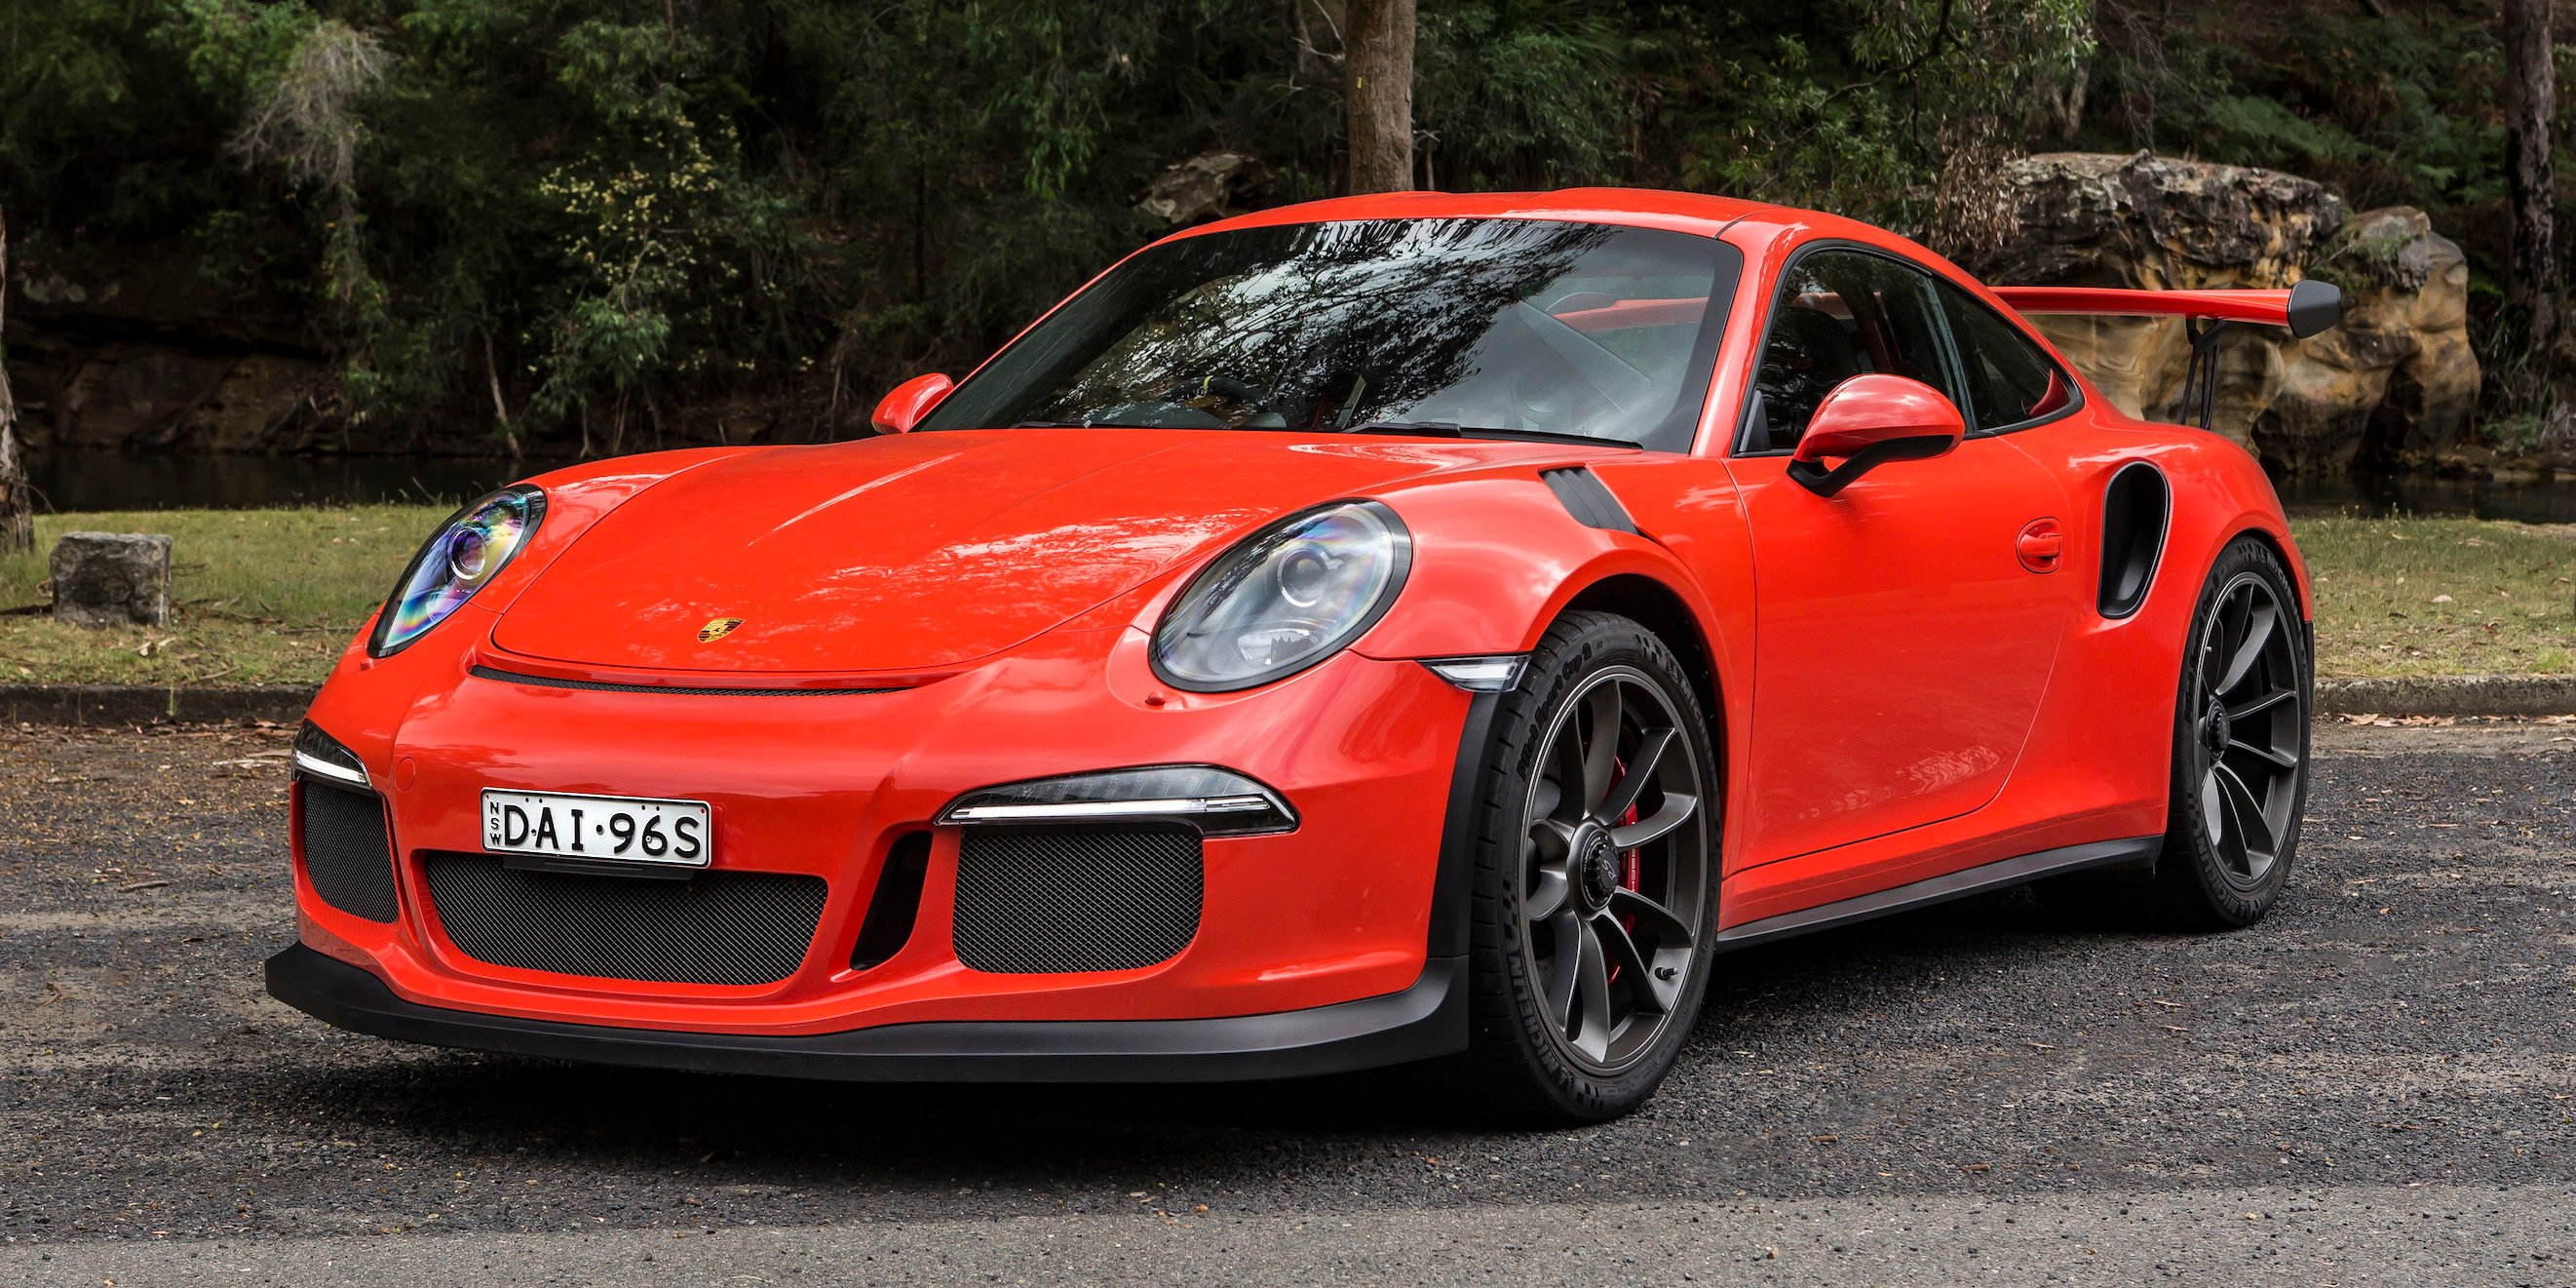 2016 Porsche 911 Gt3 Rs Review Photos Caradvice